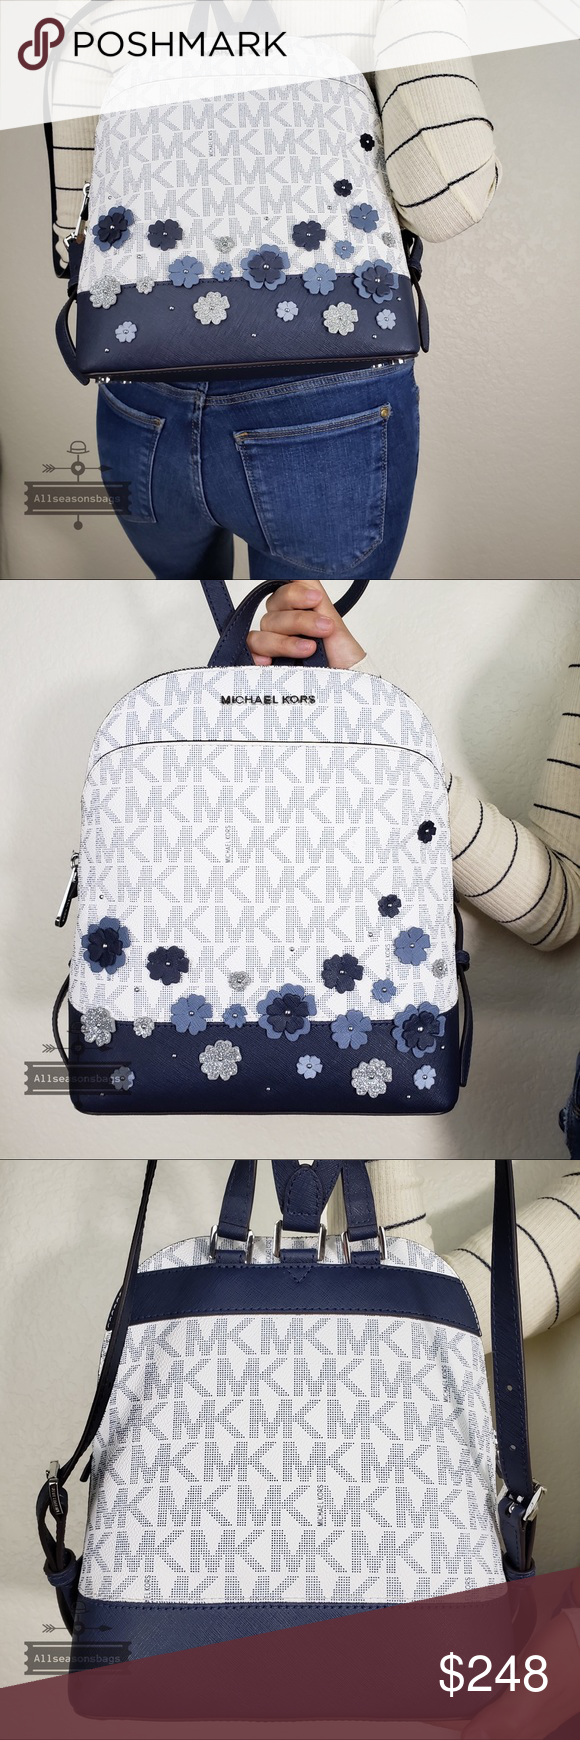 0a4dbf2fc756 NWT Michael Kors Emmy Floral navy backpack small Emmy Floral MK Logo  Signature Saffiano Leather SM